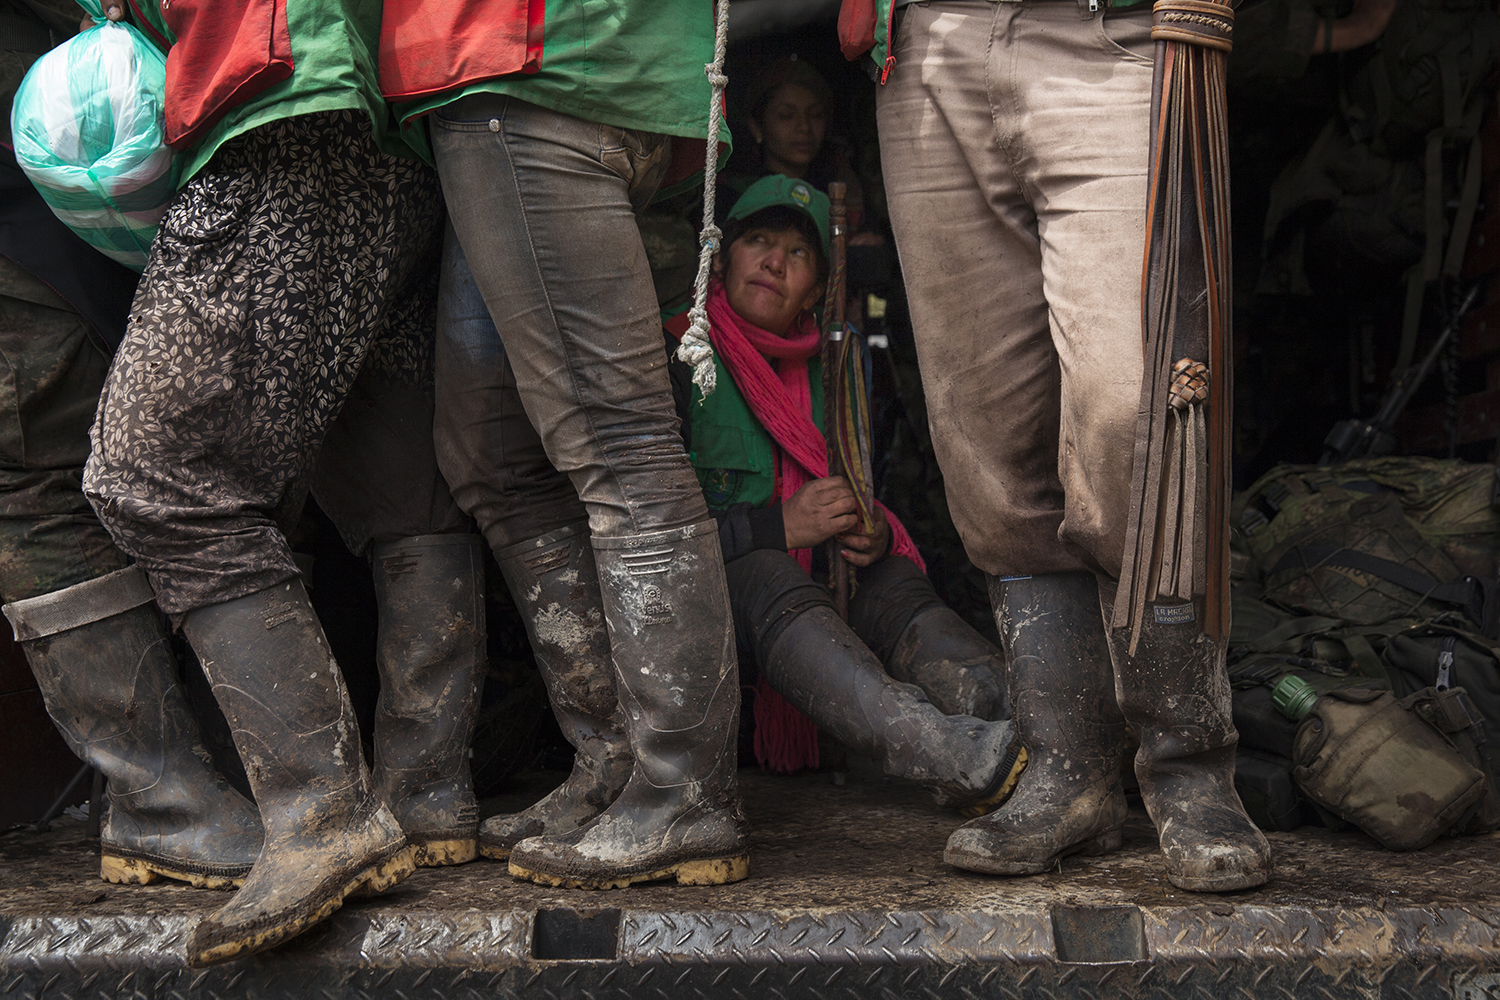 Members of an Indigenous guard in Cauca rest in the back of a truck after days of searching for a woman who was kidnapped by men wearing ELN-identifying armbands on Nov. 18, 2016. In Cauca, Indigenous and ethnic communities have a long history of organizing themselves, even acting as unarmed guardians of their own territories.